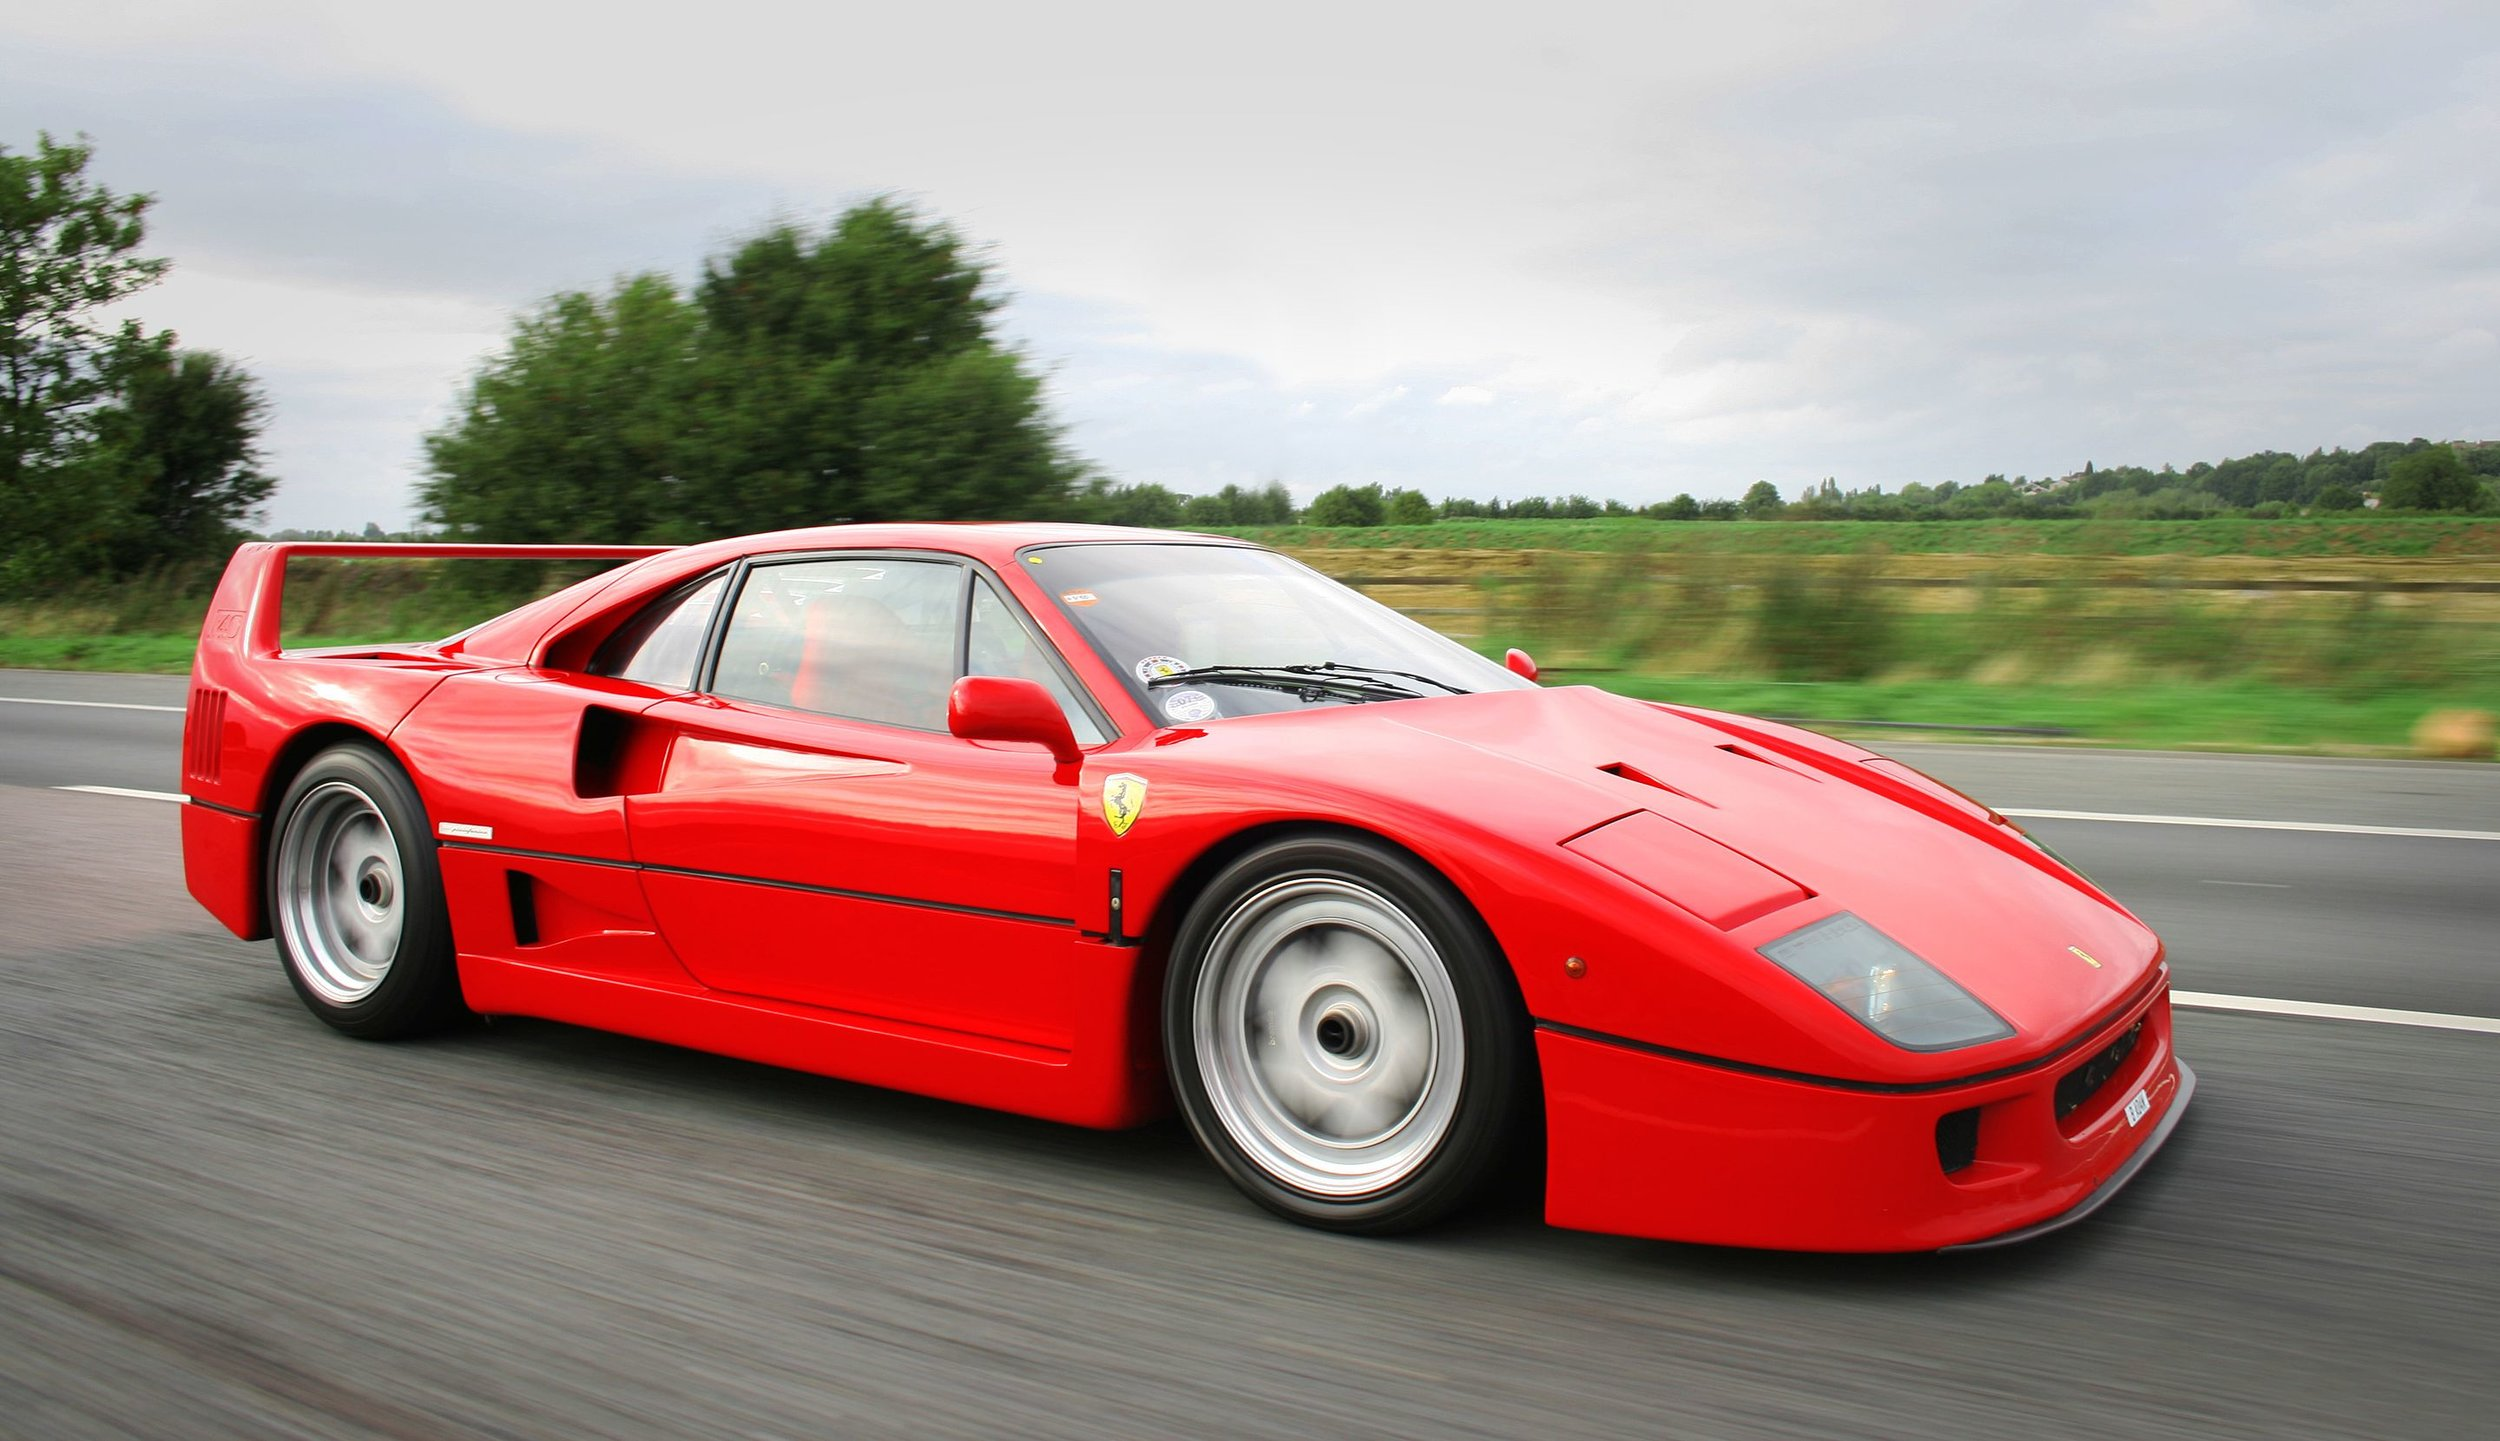 The Ferrari F40. Source: Will Ainsworth.